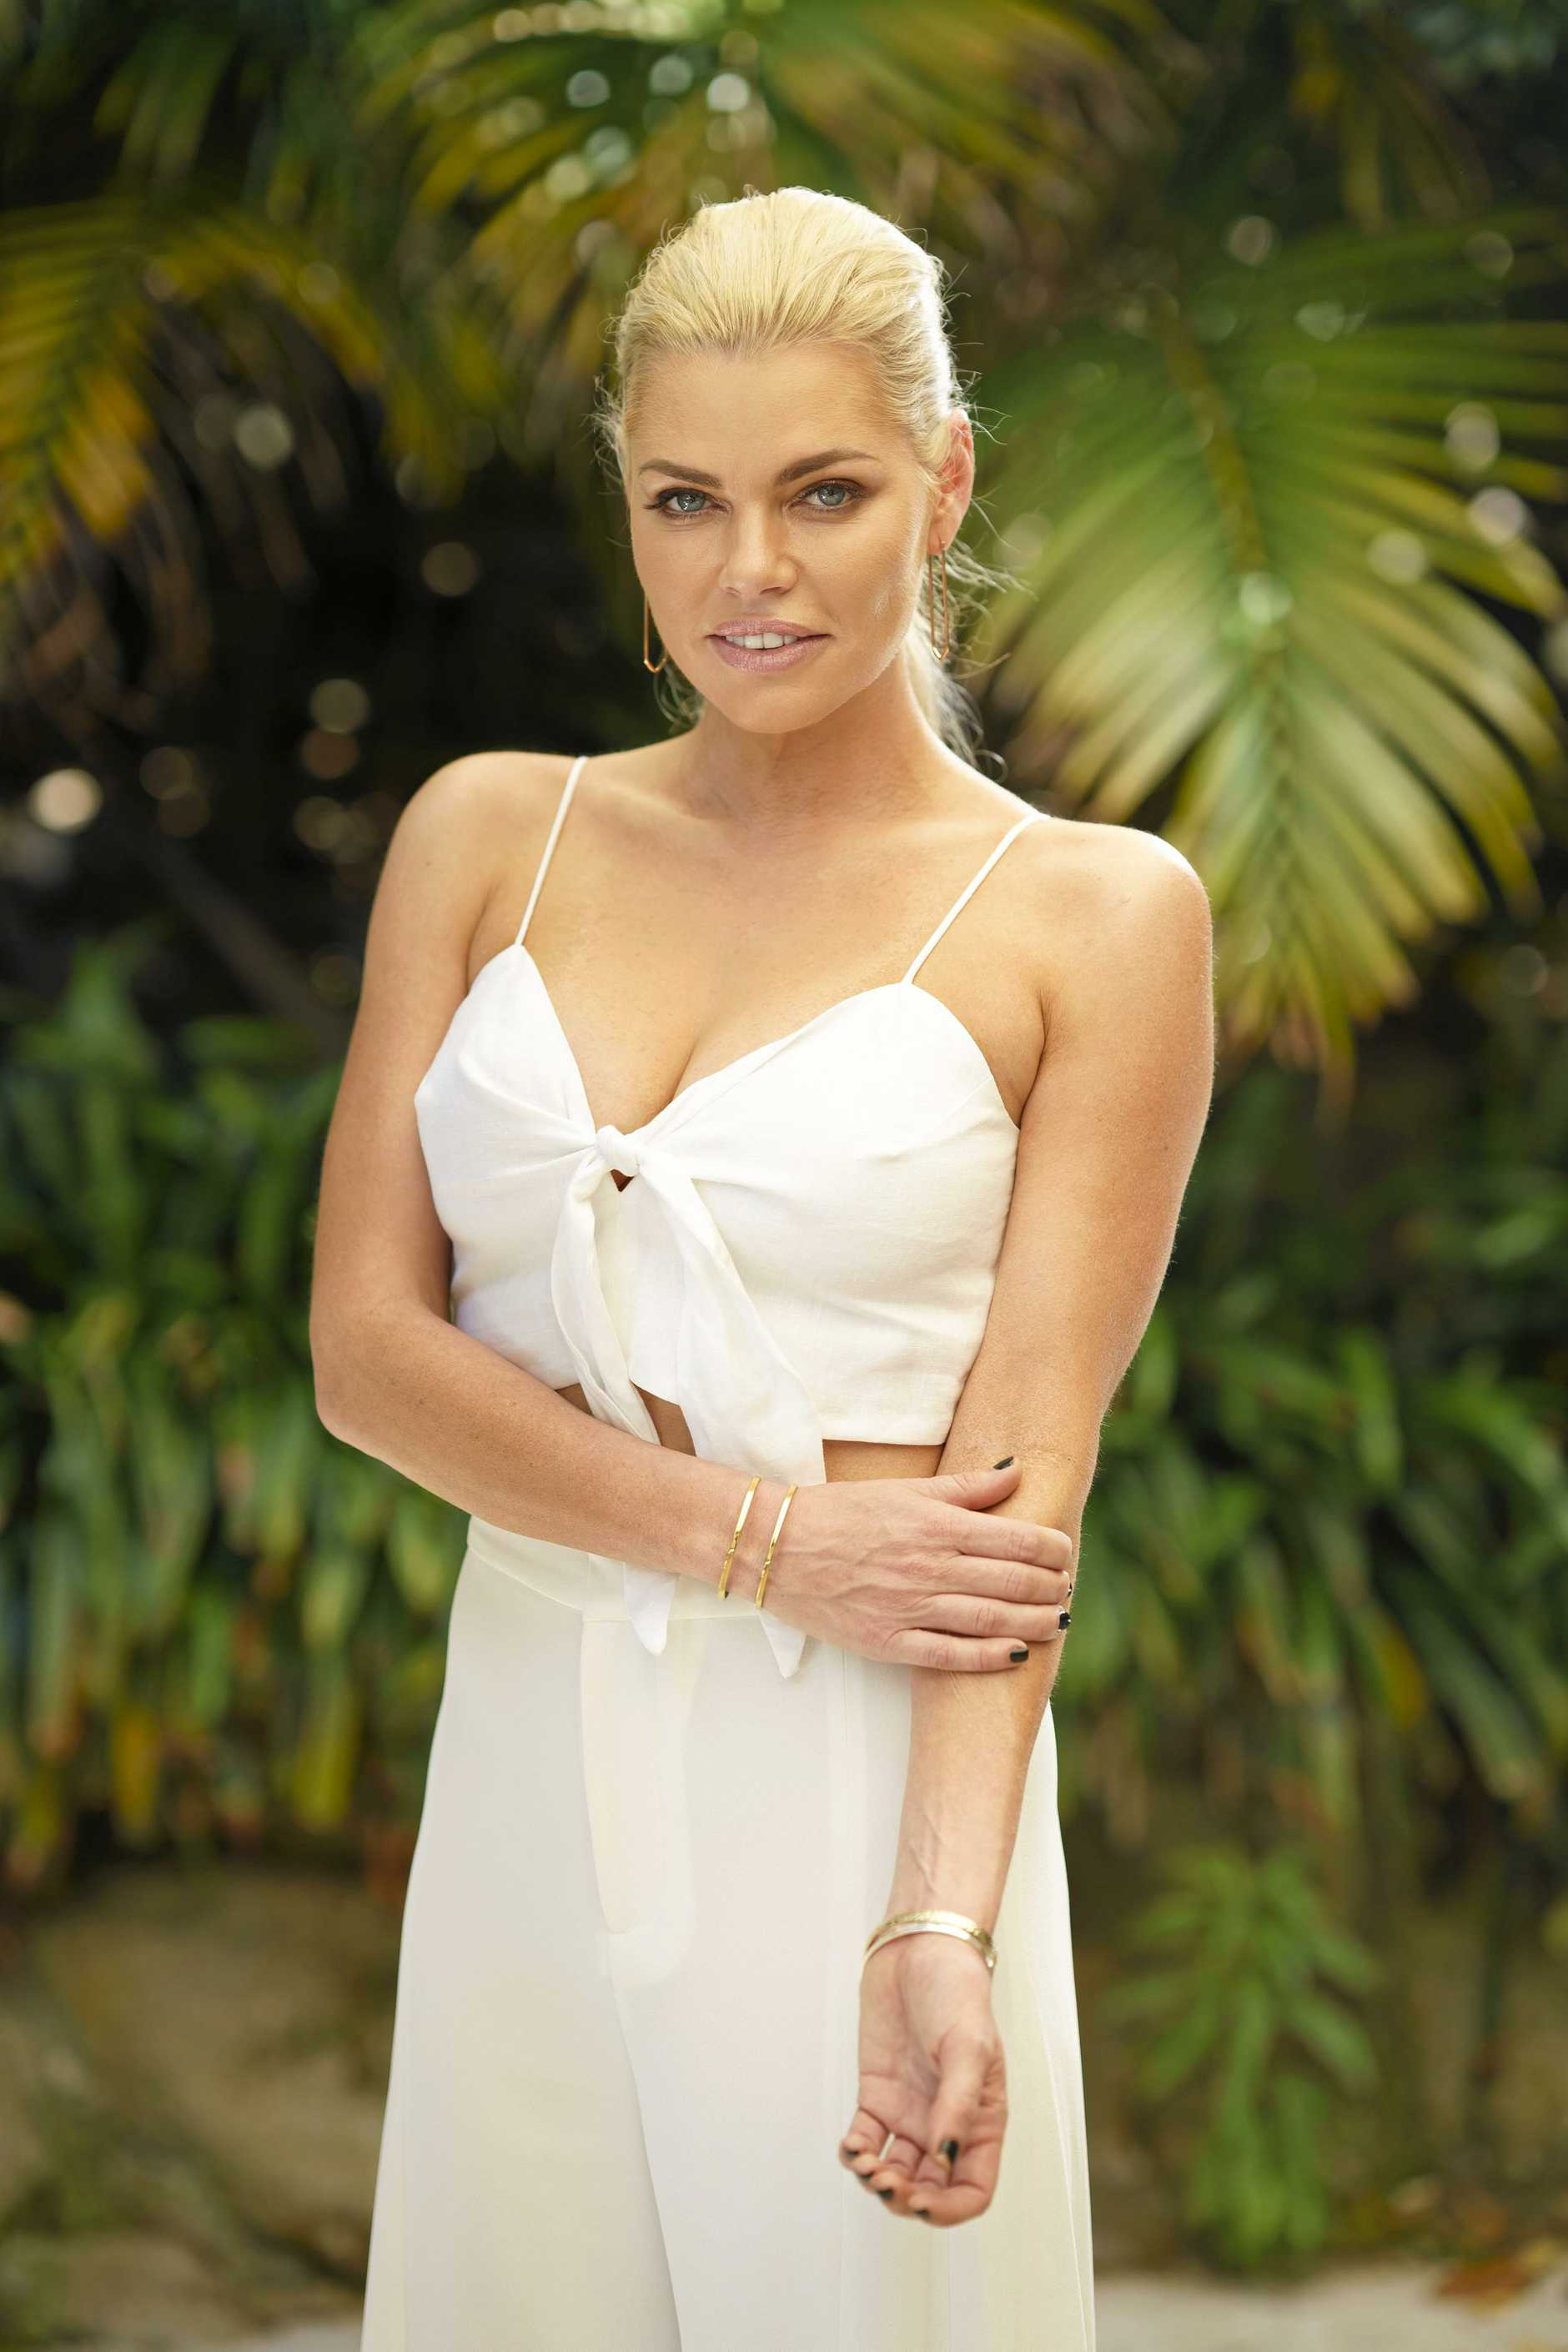 Sophie Monk will host the TV series Love Island Australia from Mallorca, Spain.